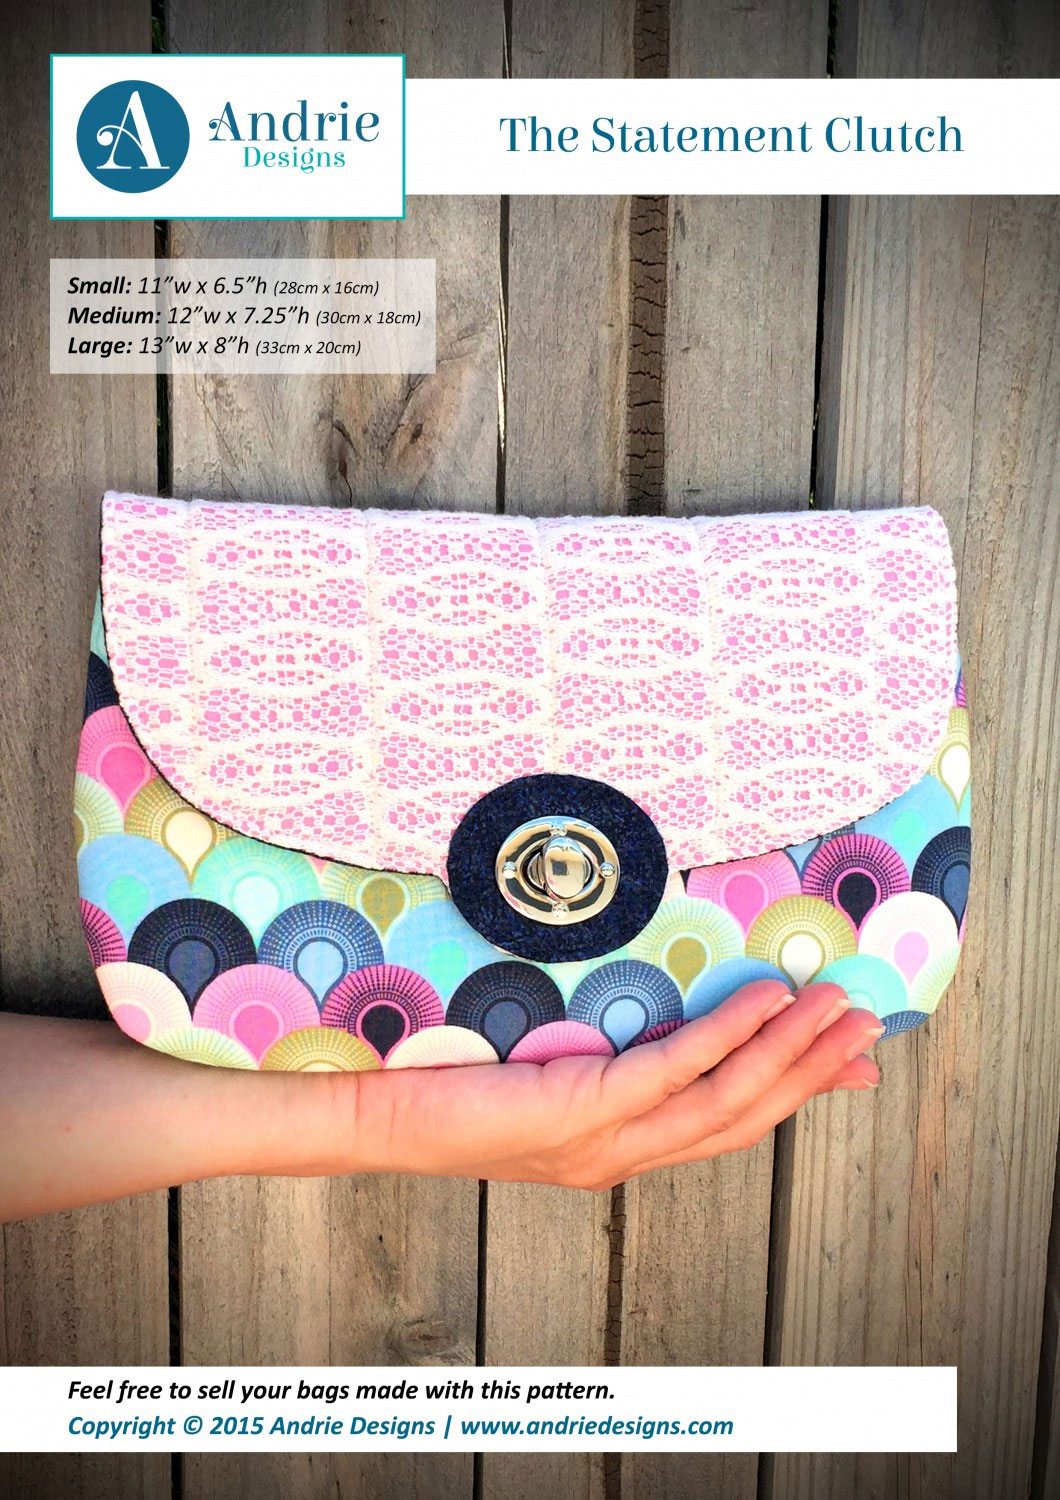 the-statement-clutch-sewing-pattern-andrie-designs-front